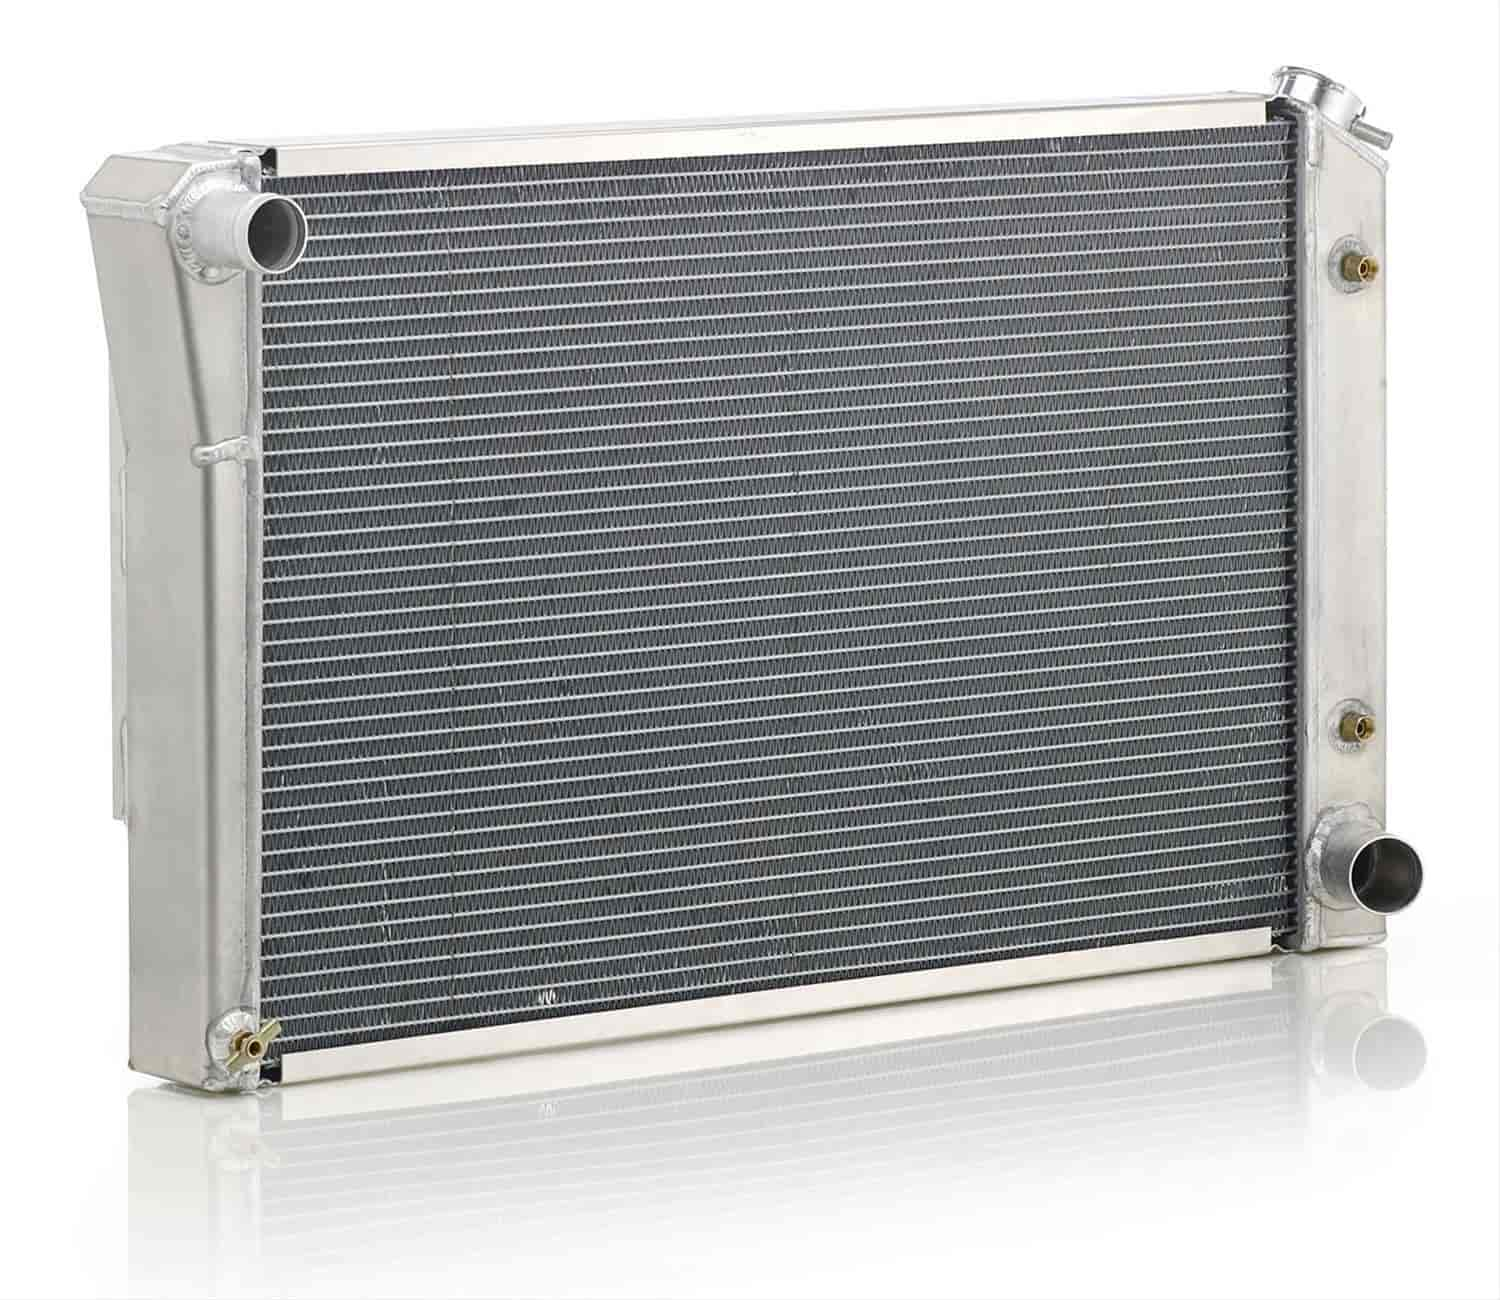 Be Cool Radiators 62339 - Be Cool Crossflow Series Aluminum Radiators